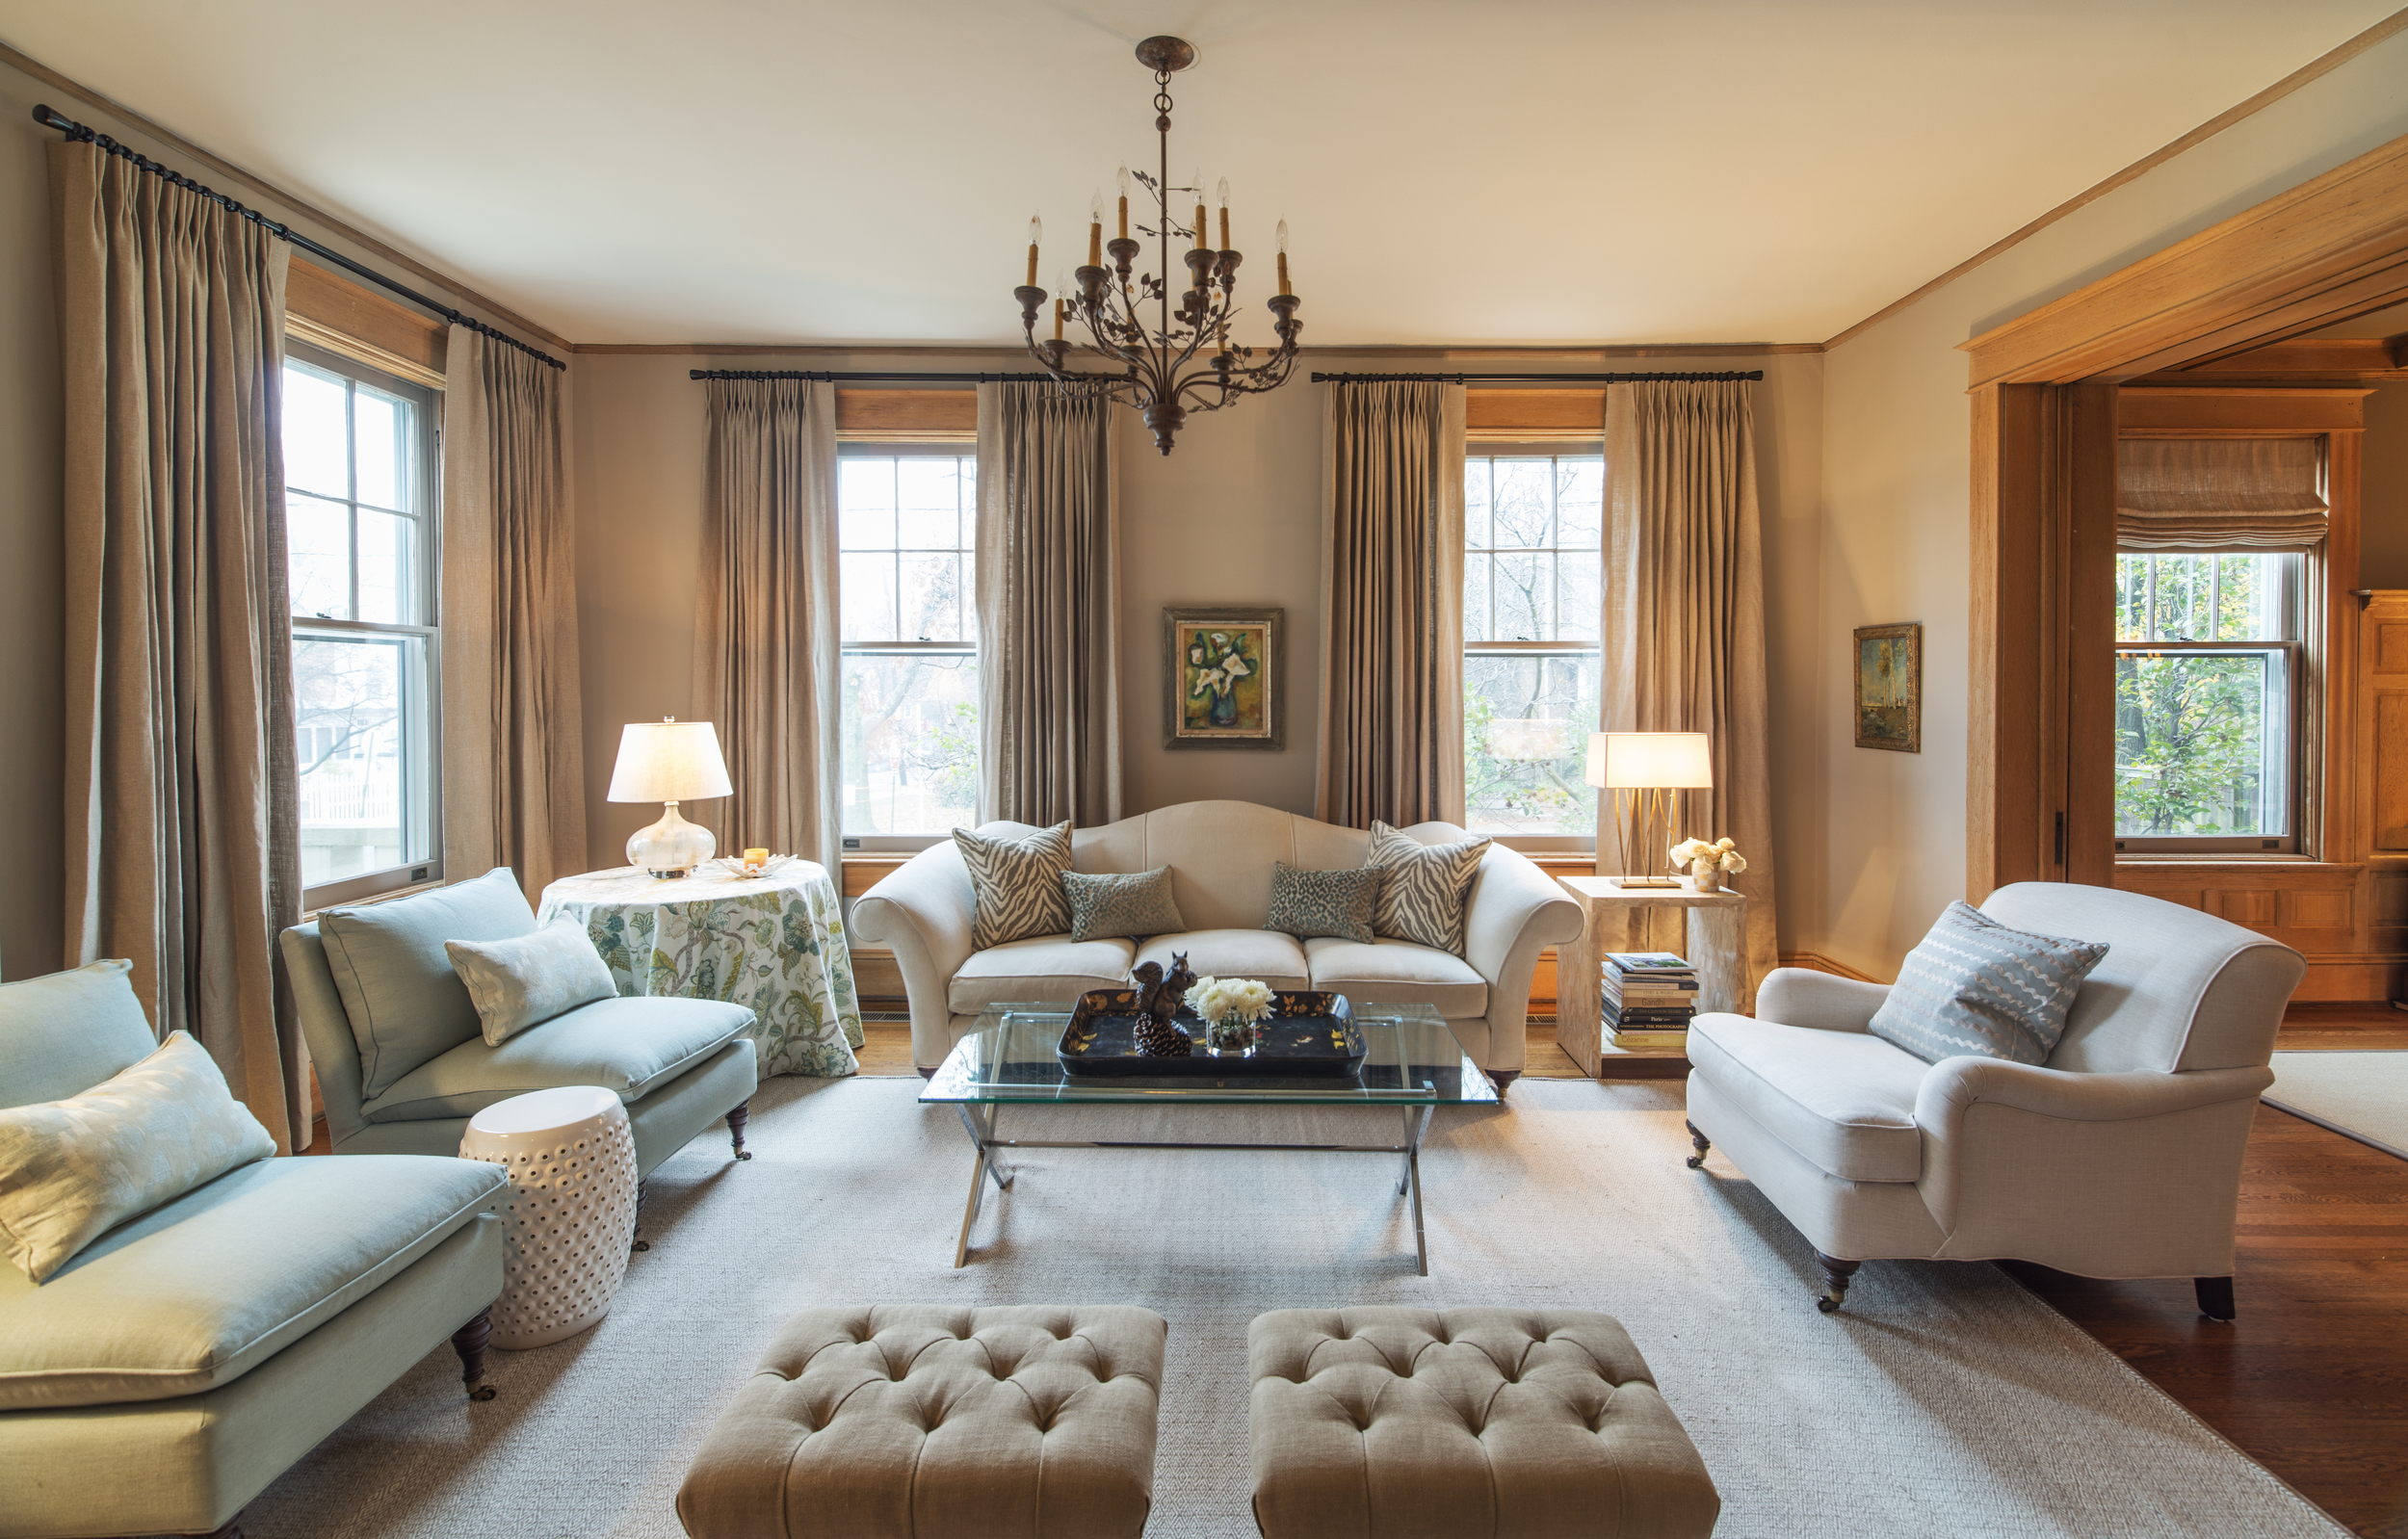 Chevy Chase DC, Renovation and Interior Design